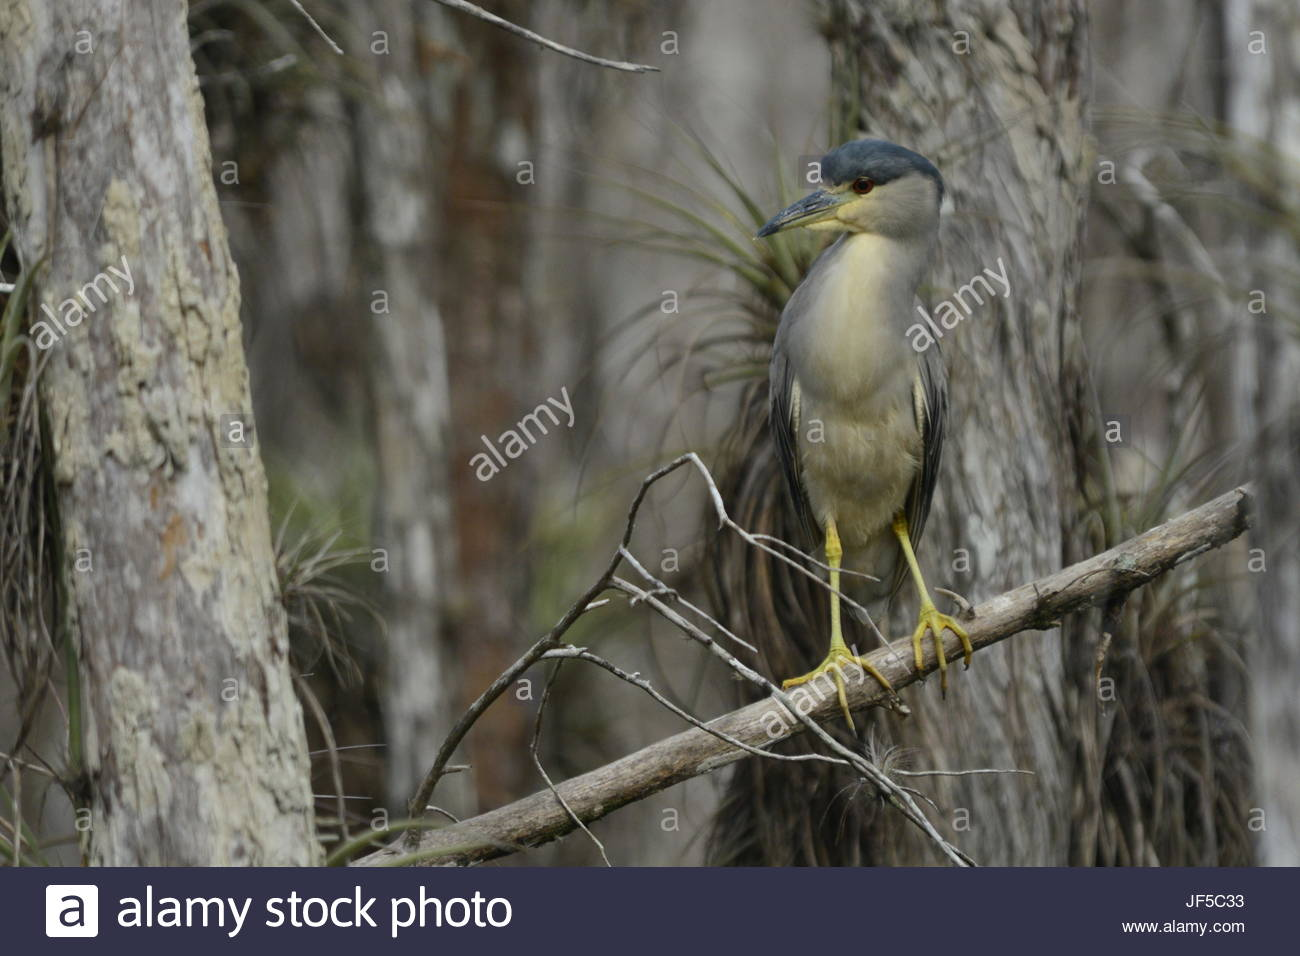 A black-crowned night heron perching on a tree branch. - Stock Image